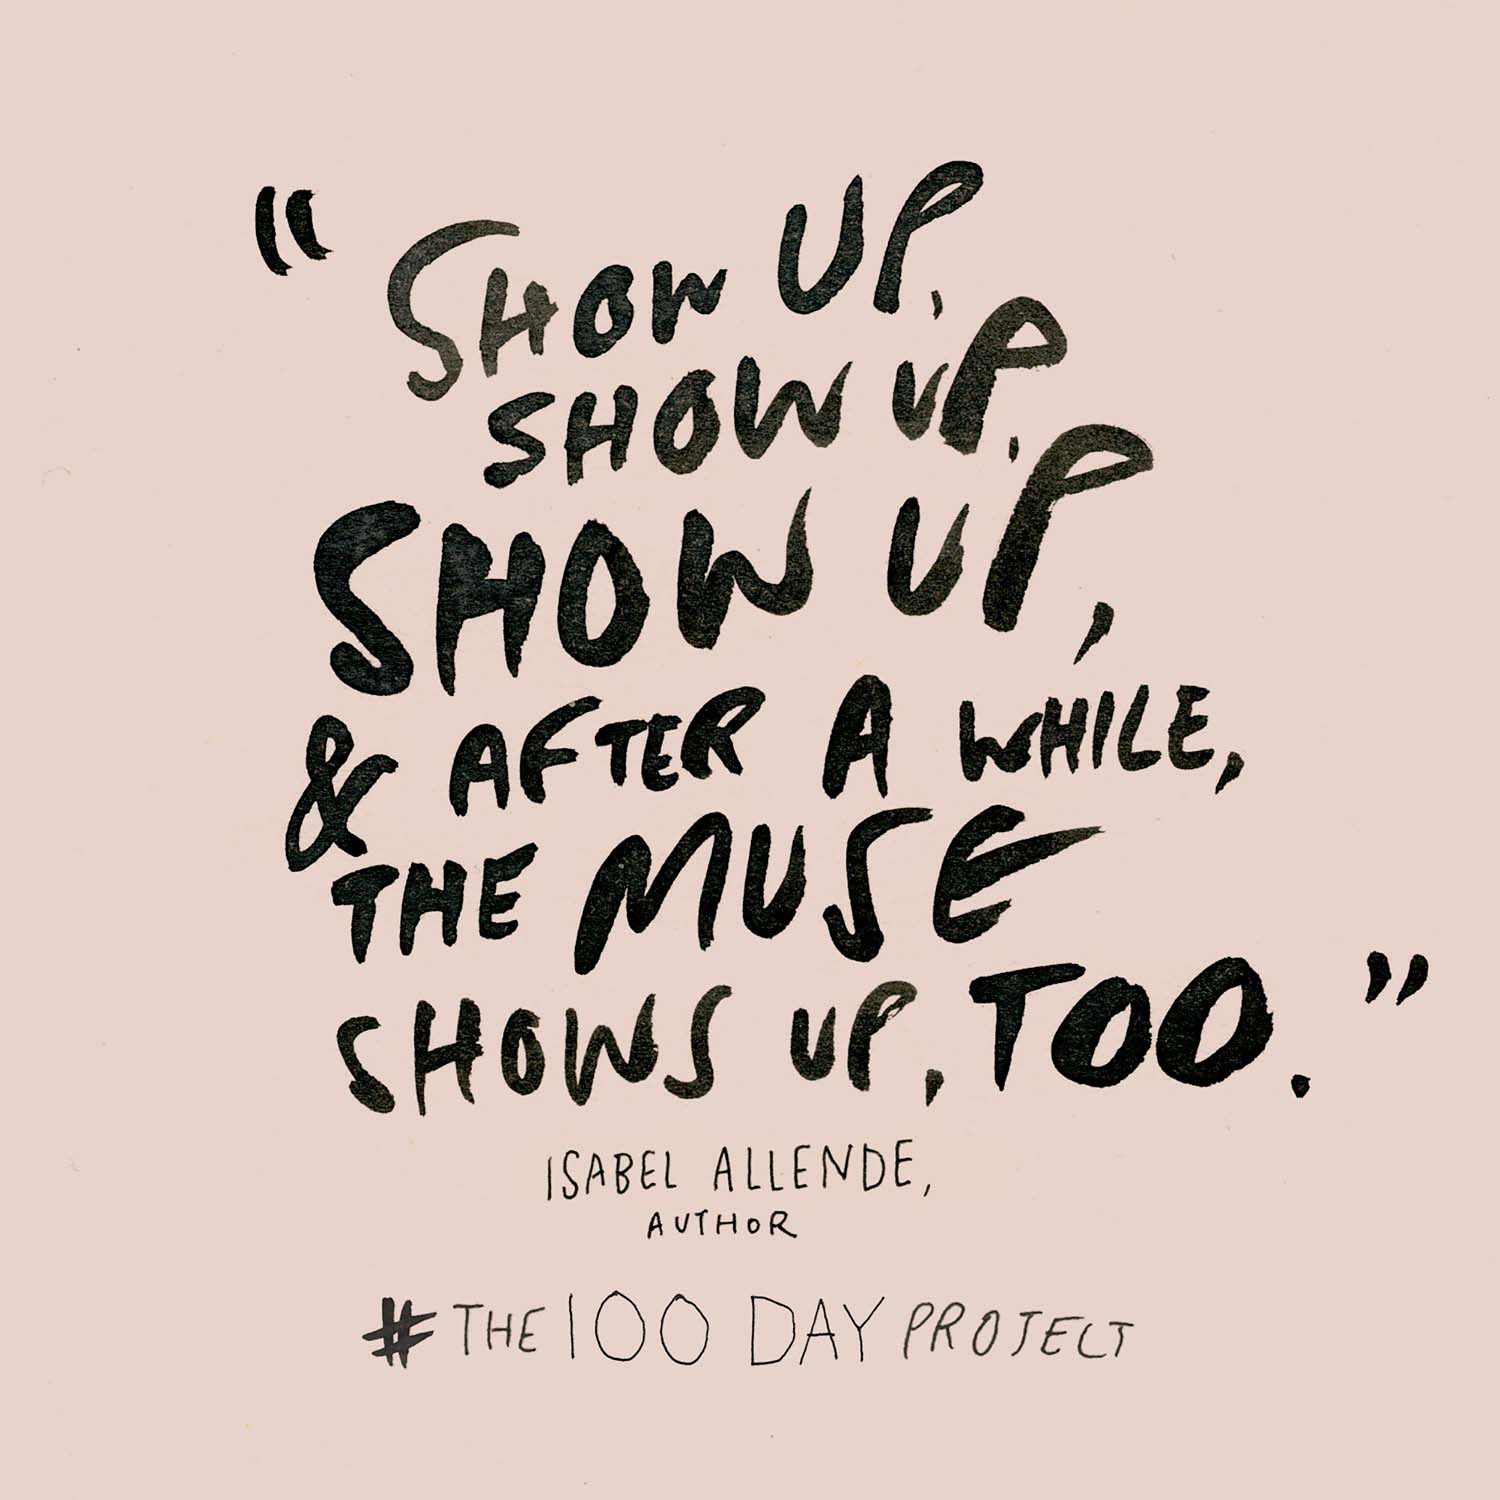 The100dayproject-Show-Up-Image.jpg